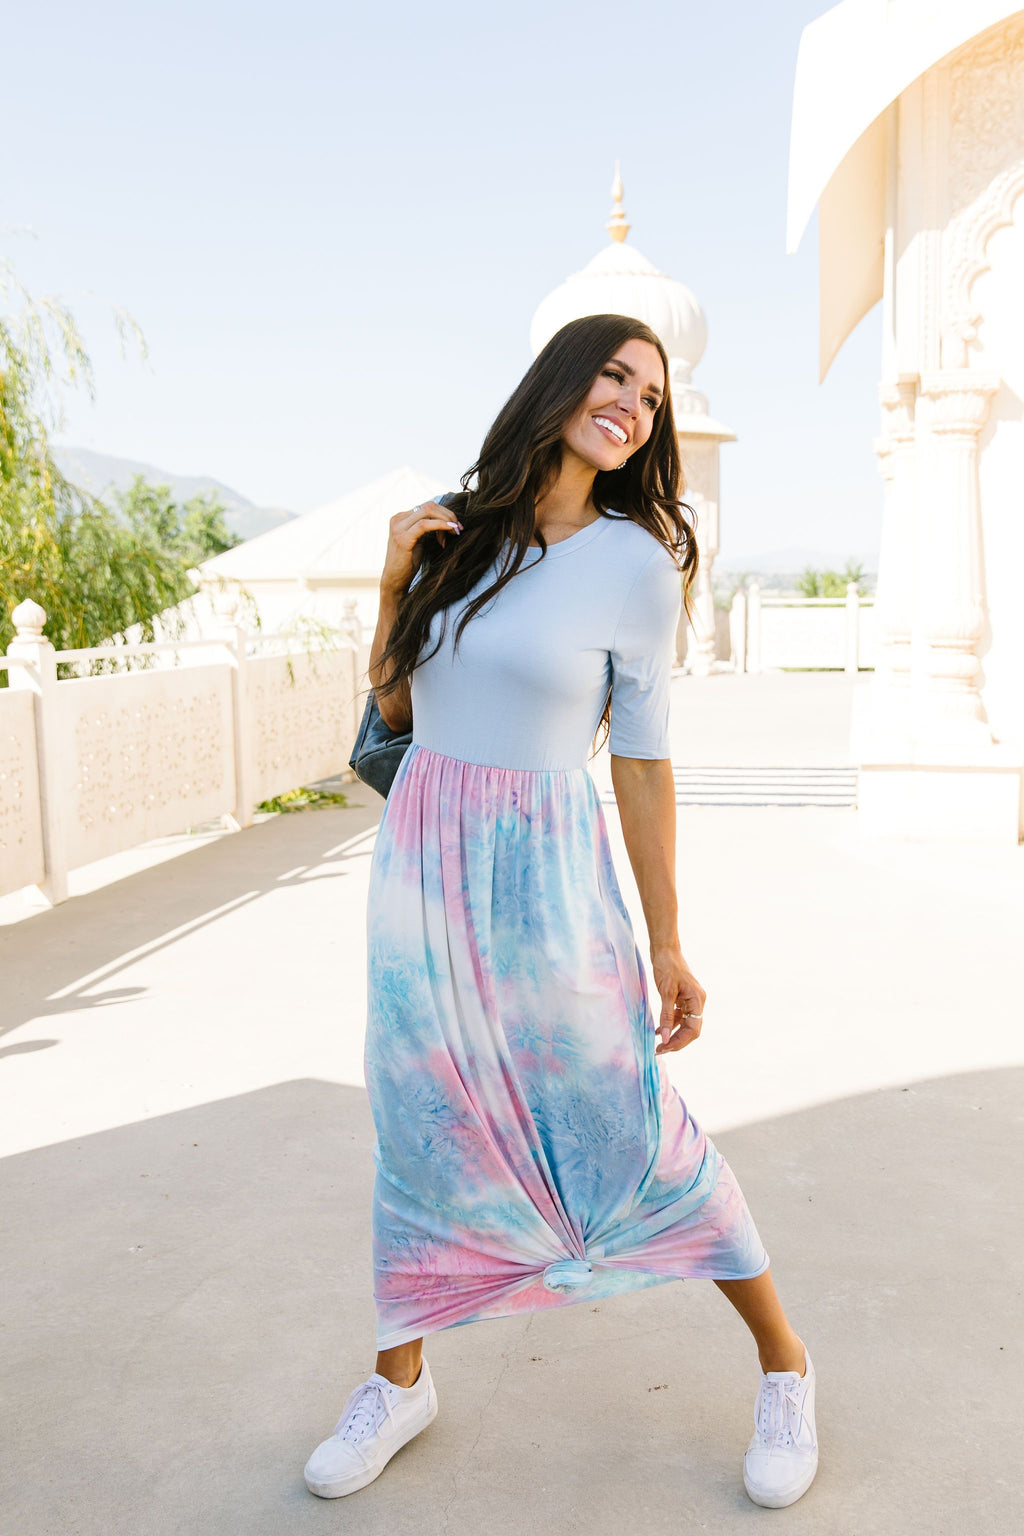 Santa Ana Tie Dye Maxi In Blue-1XL, 2XL, 3XL, 7-21-2020, 7-31-2020, Bonus, Dresses, Group A, Group B, Group C, Large, Medium, Plus, Small-Womens Artisan USA American Made Clothing Accessories